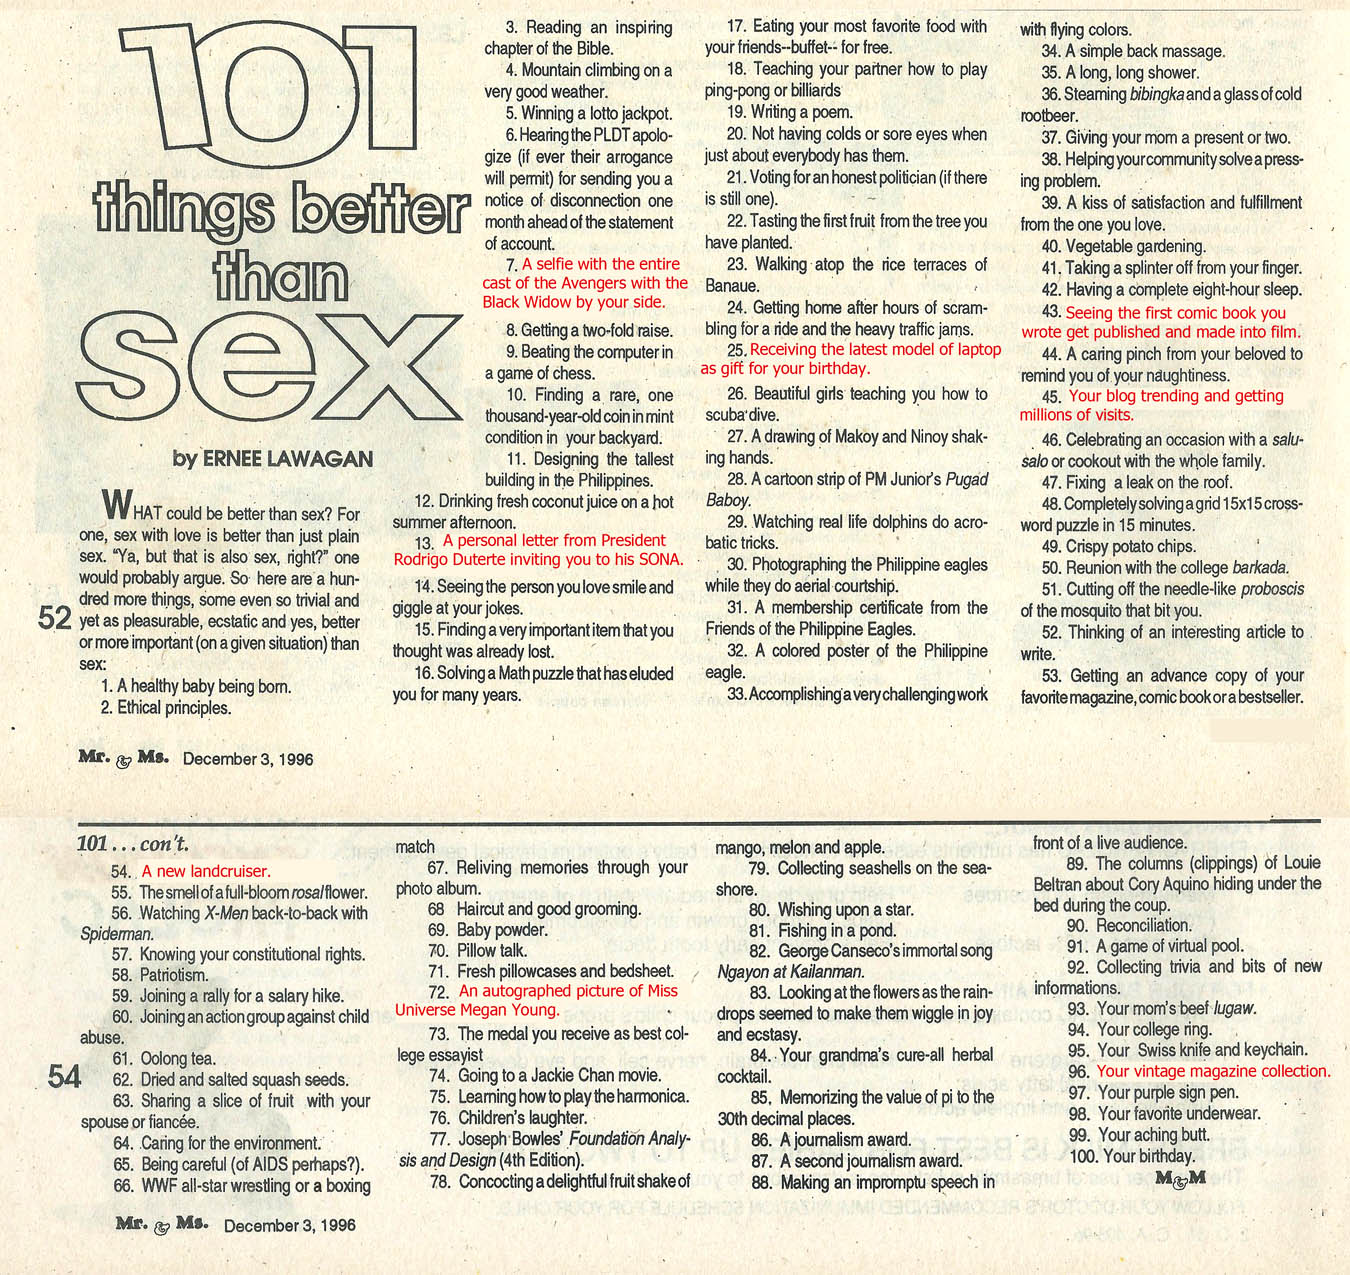 Things that are better than sex